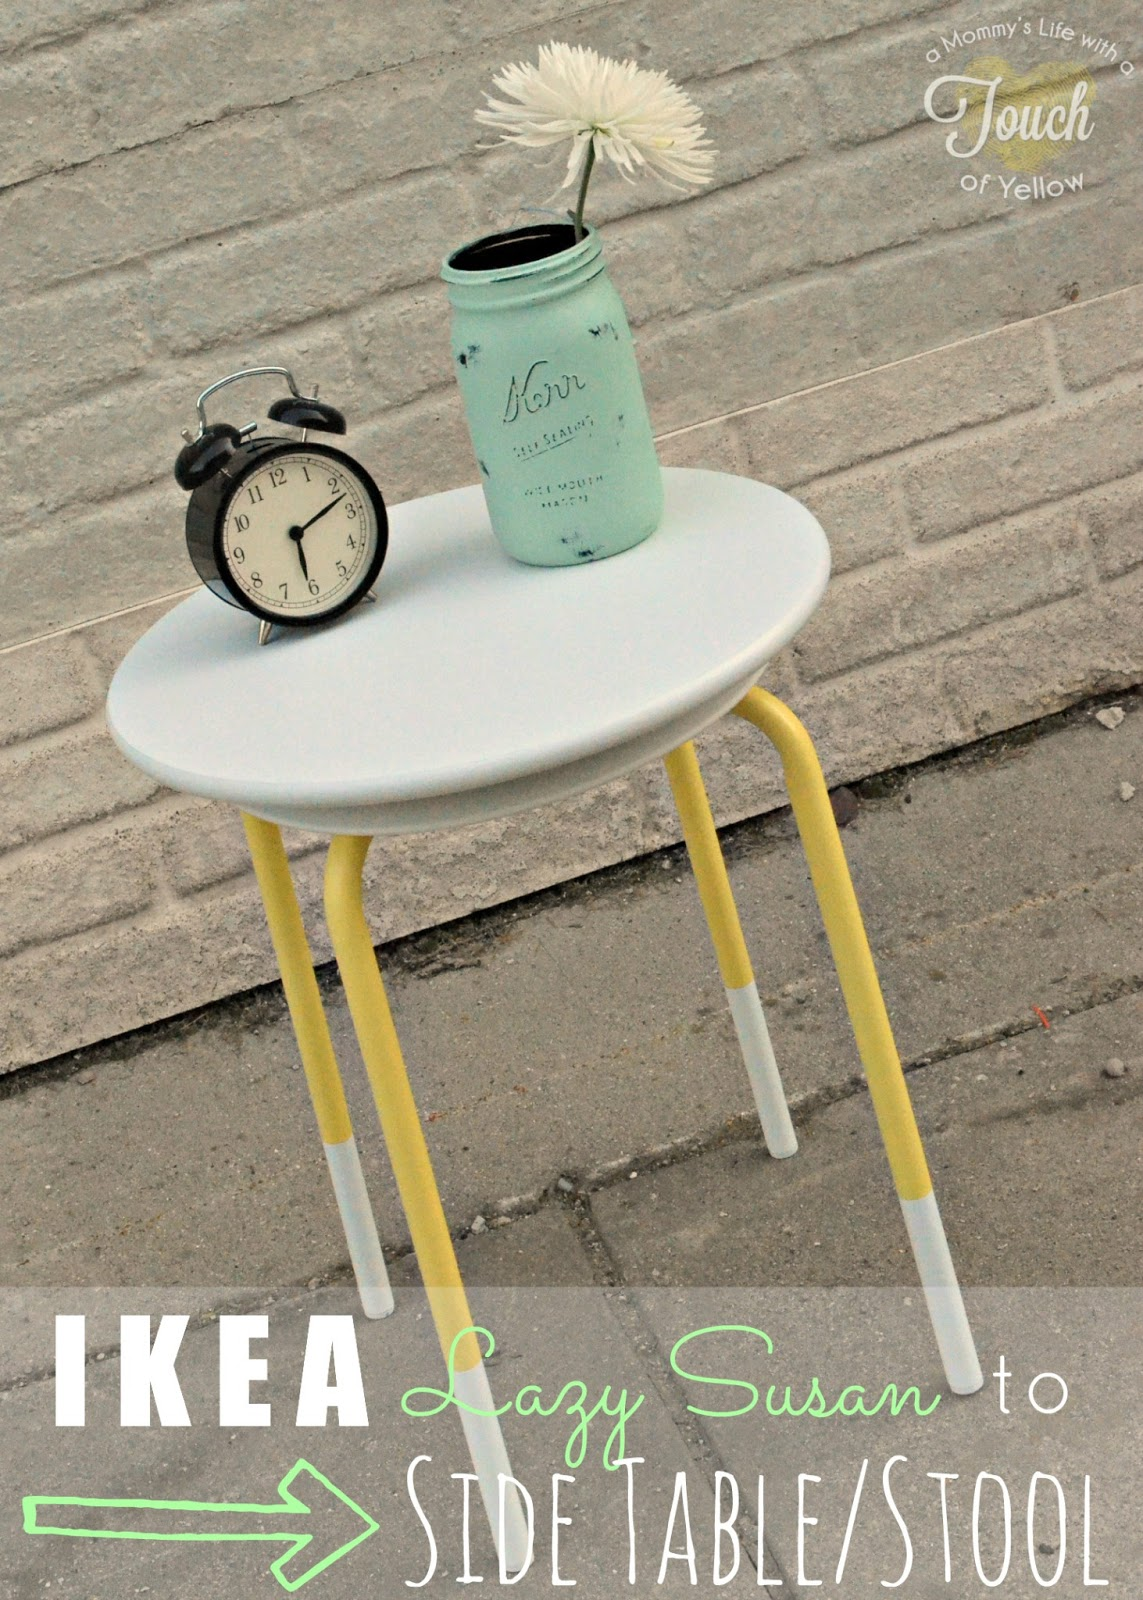 Ikea Lazy Susan To Side Table/ Stool {Ikea +10 Tutorial}